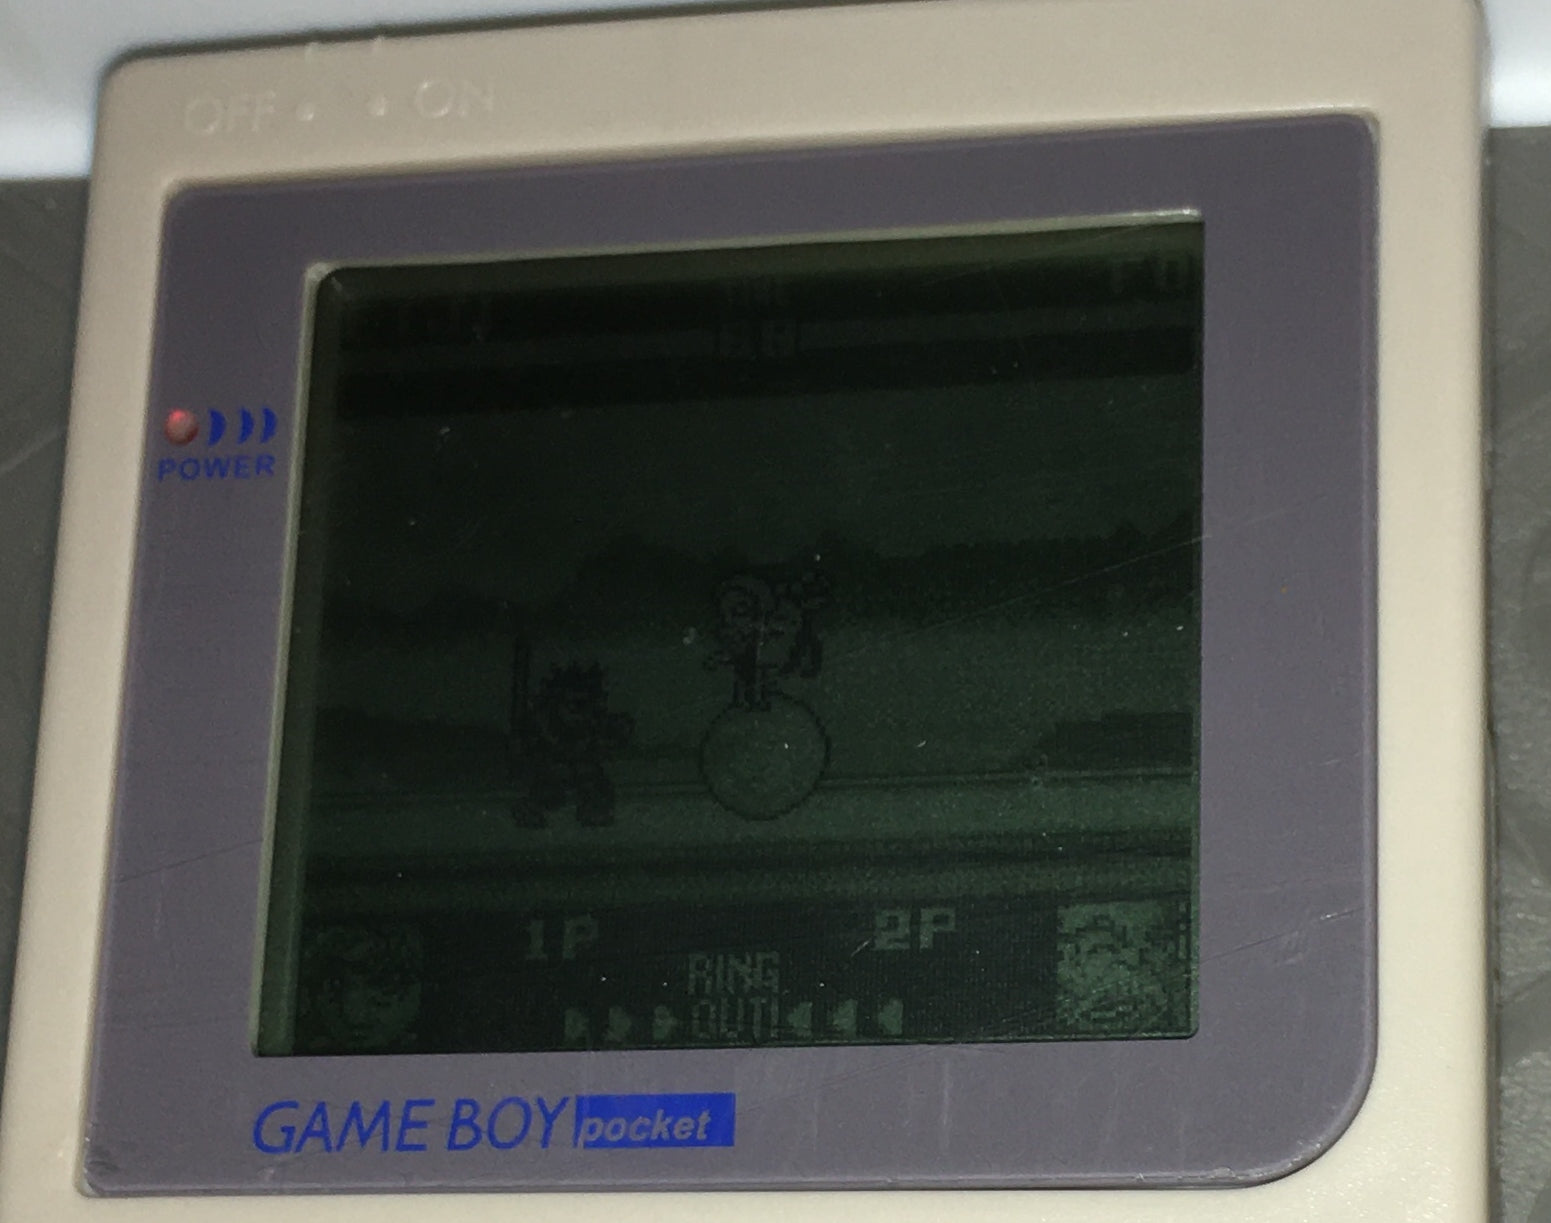 GBP gameboy pocket refurbished handheld ( light grey color)